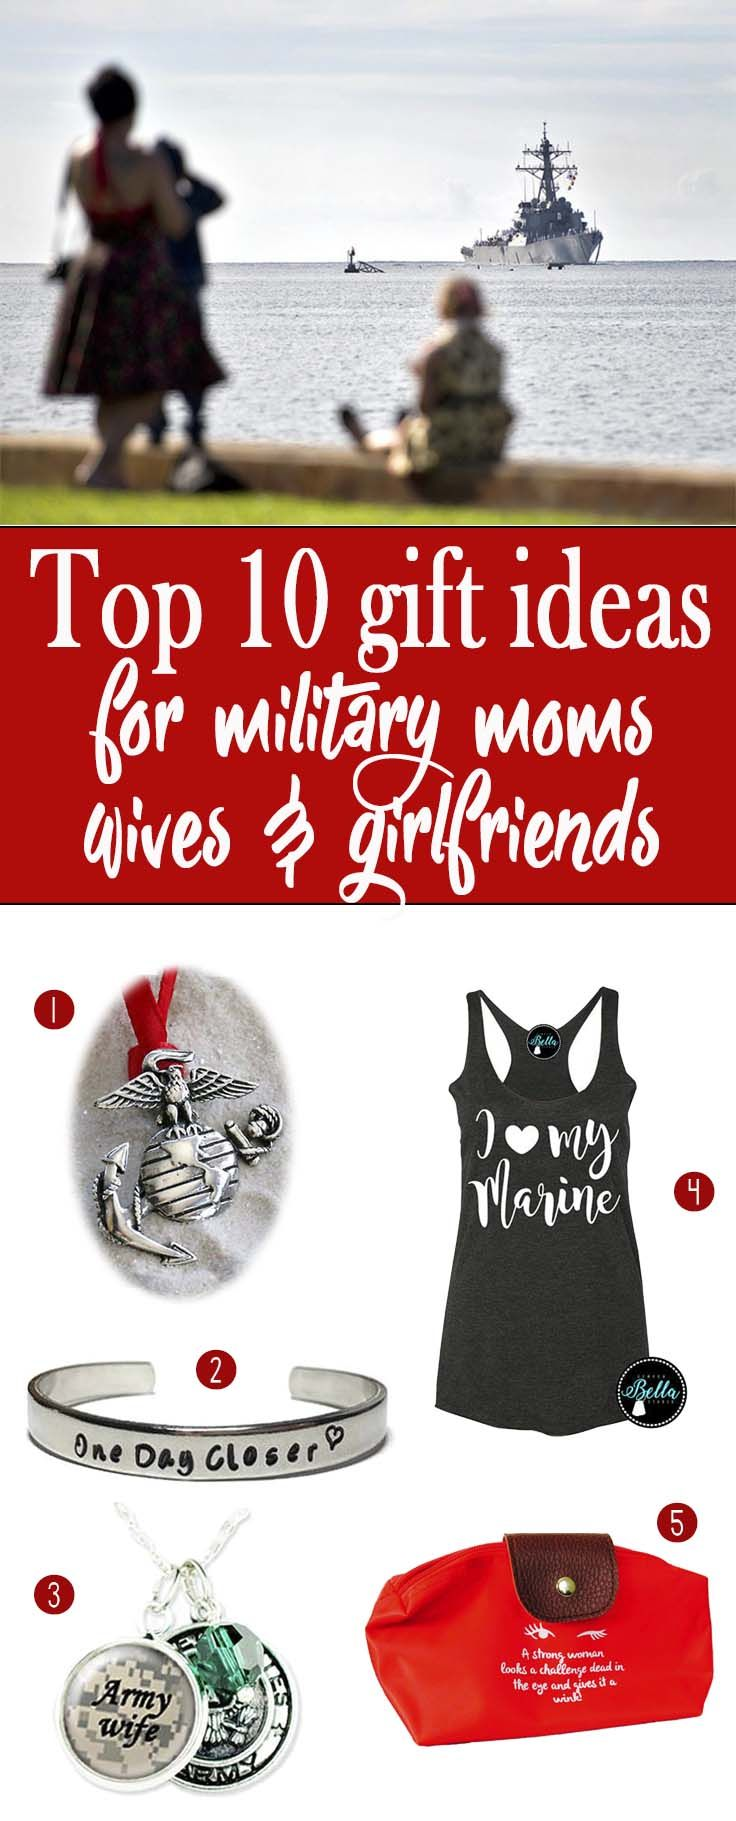 Top 10 gift ideas for military moms, wives, and girlfriends whose loved ones are deployed during Christmas.  deployment gifts for her